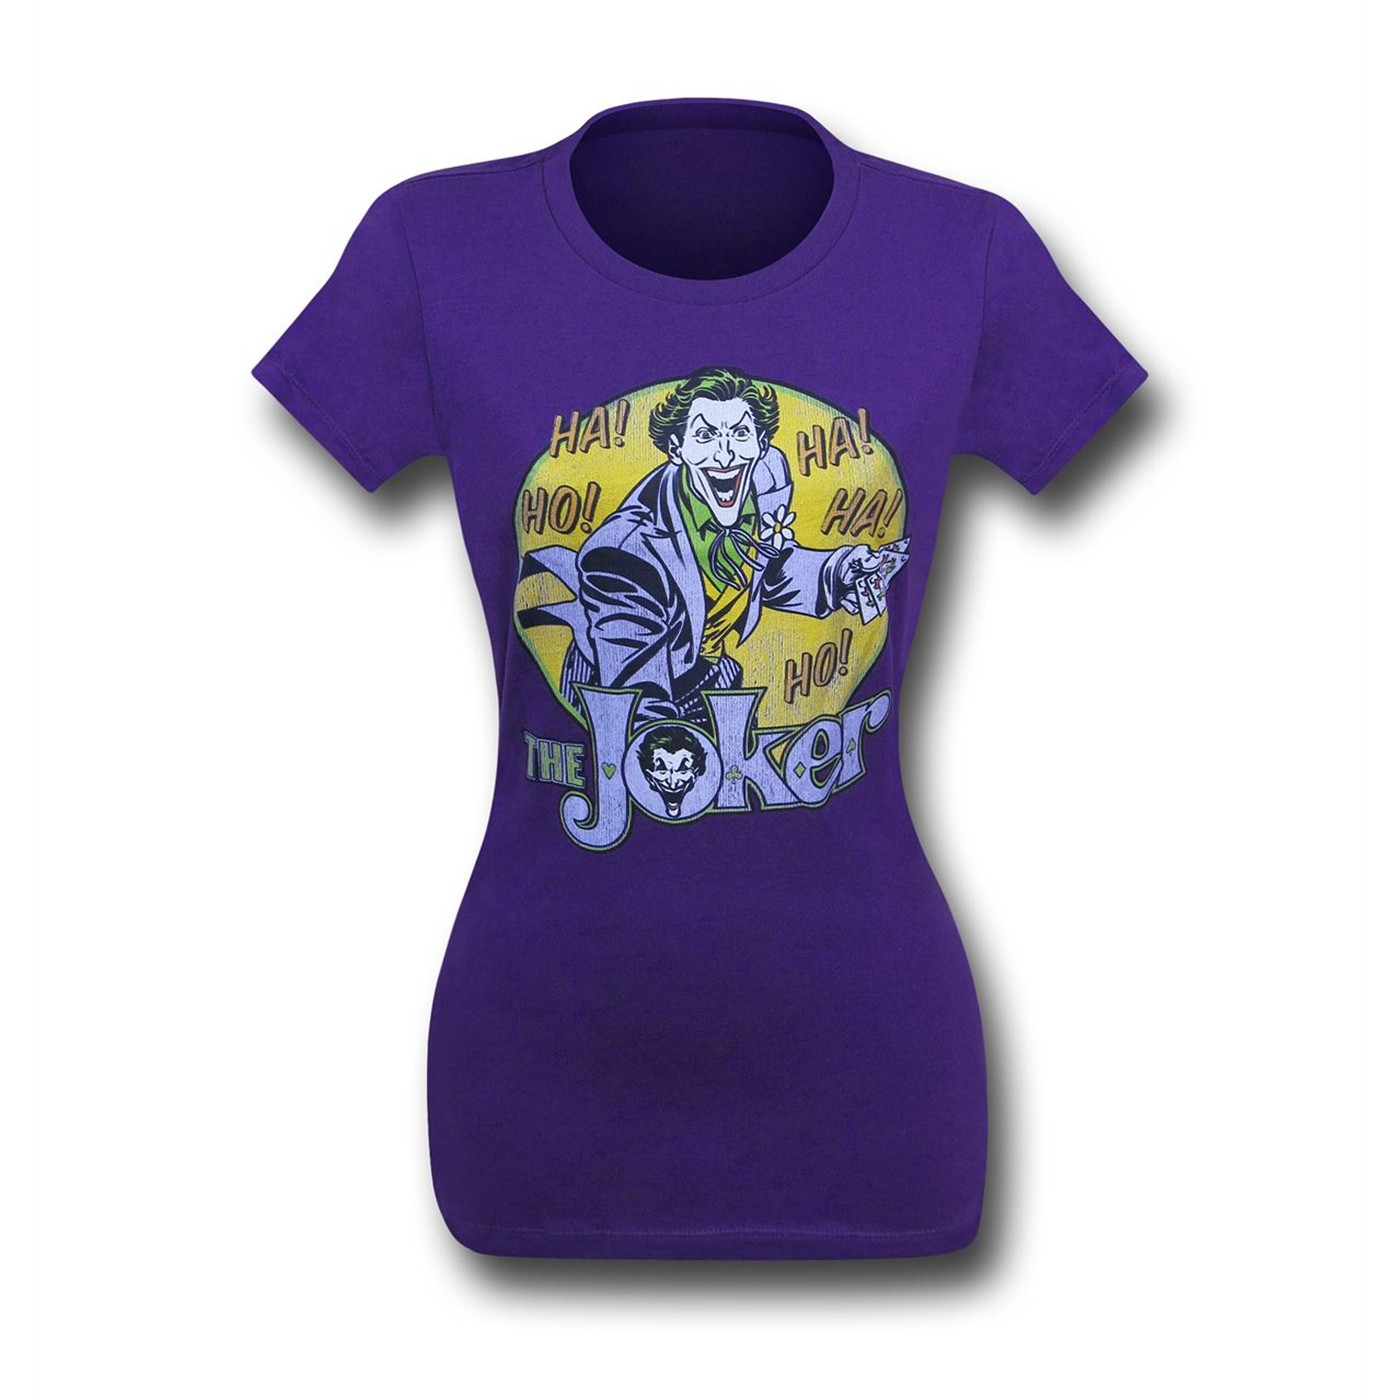 Joker Ho! Ha! Purple Women's T-Shirt